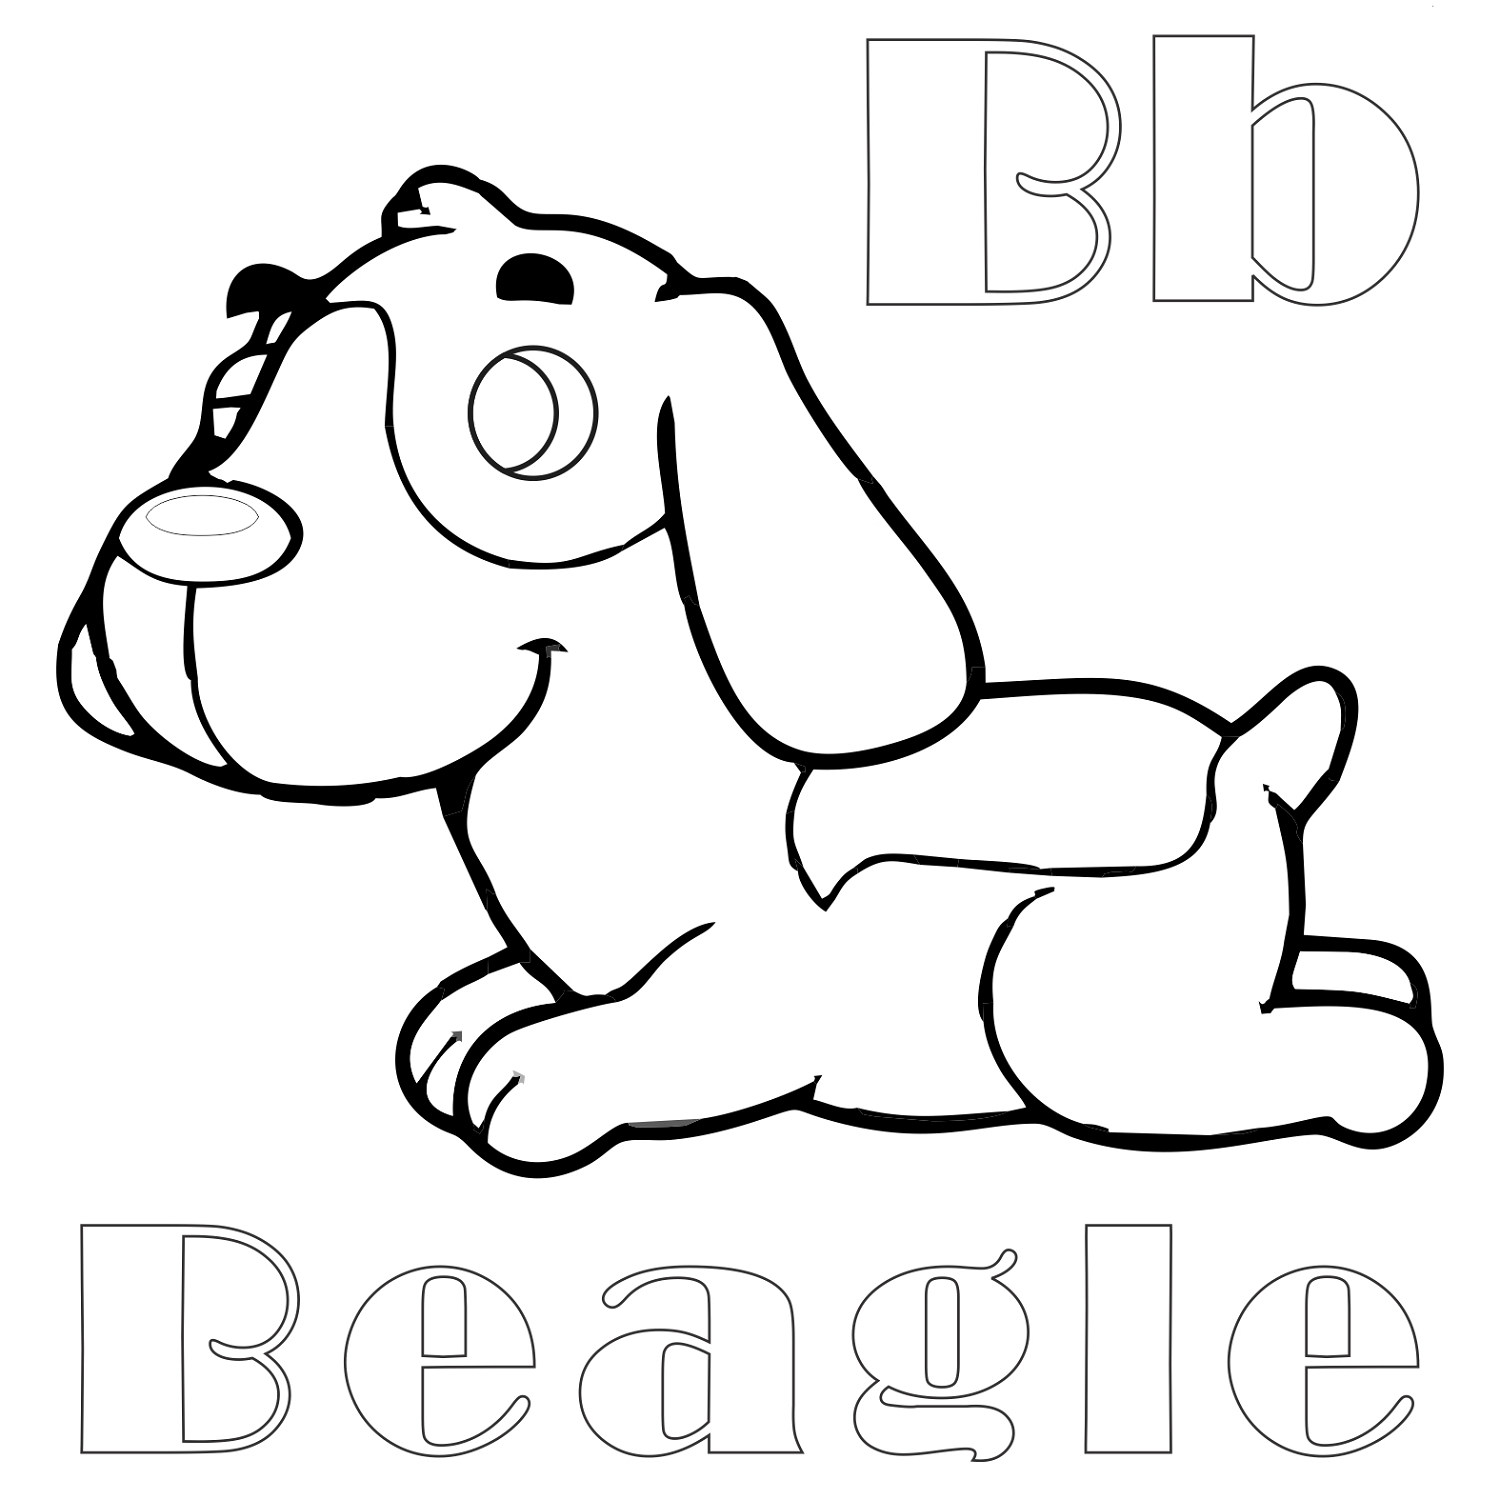 Beagle Coloring Pages For Kids | Printable Shelter